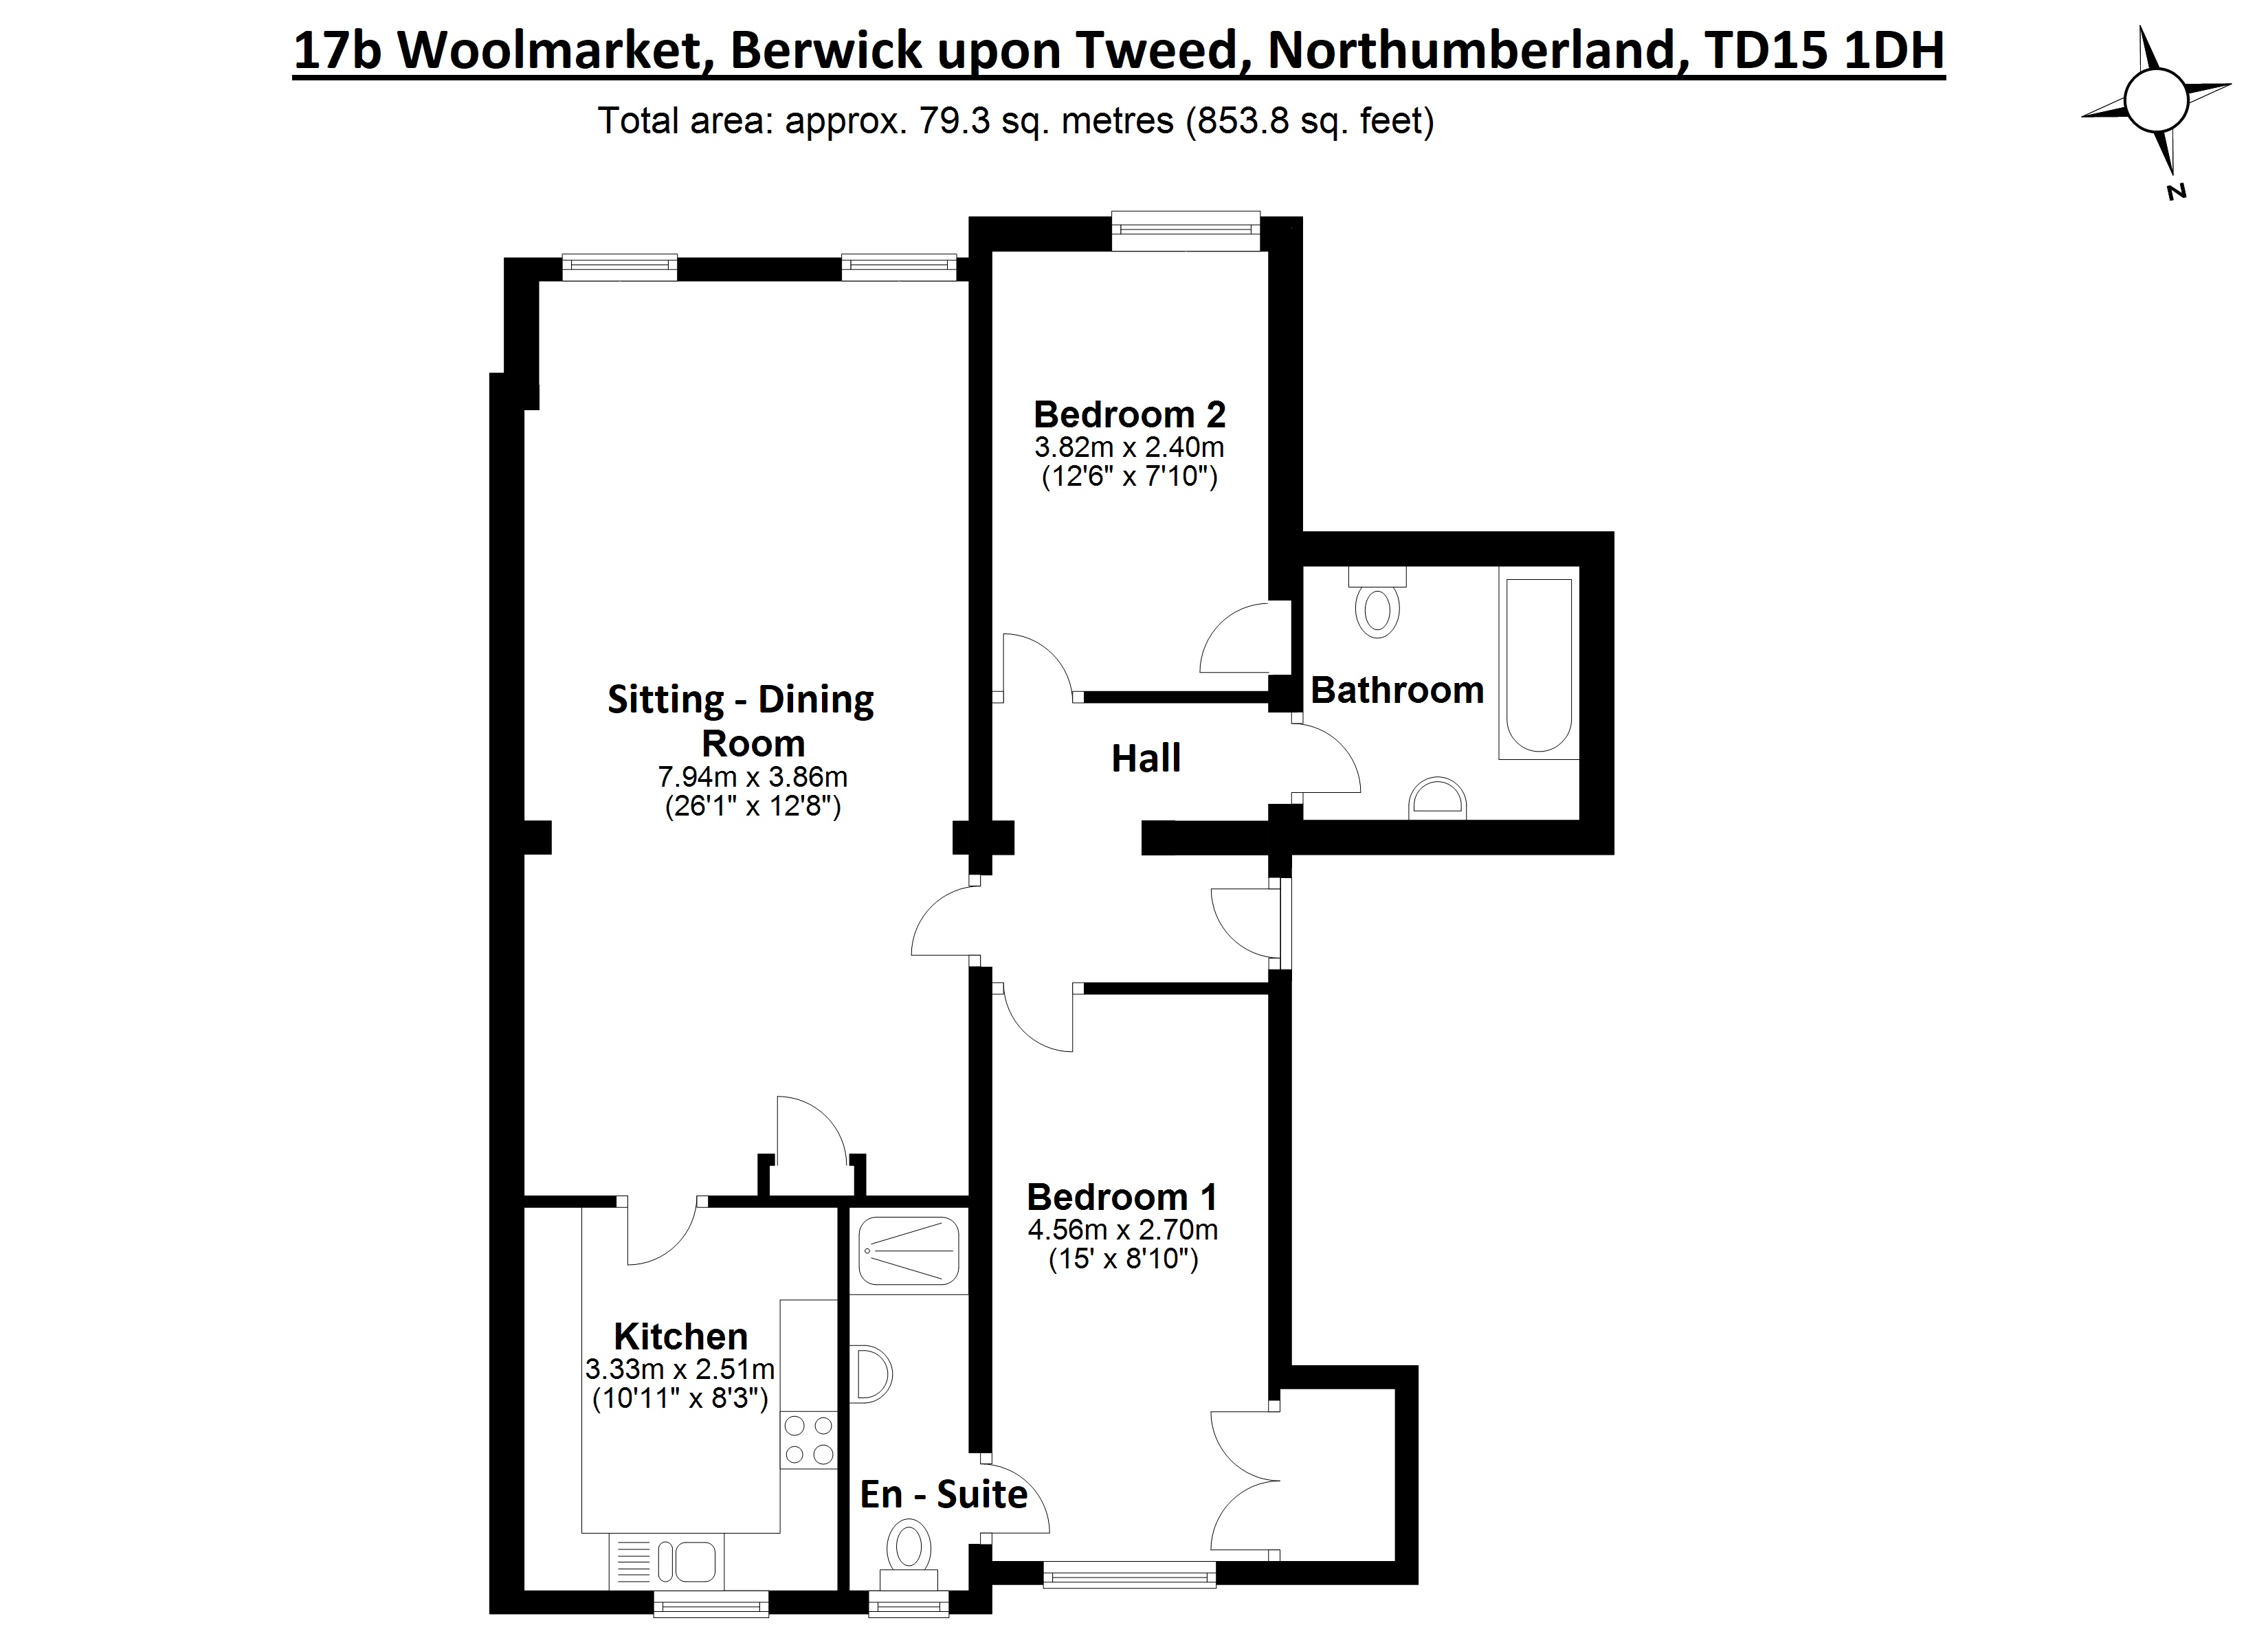 Floorplans for Woolmarket, Berwick-upon-Tweed, Northumberland, TD15